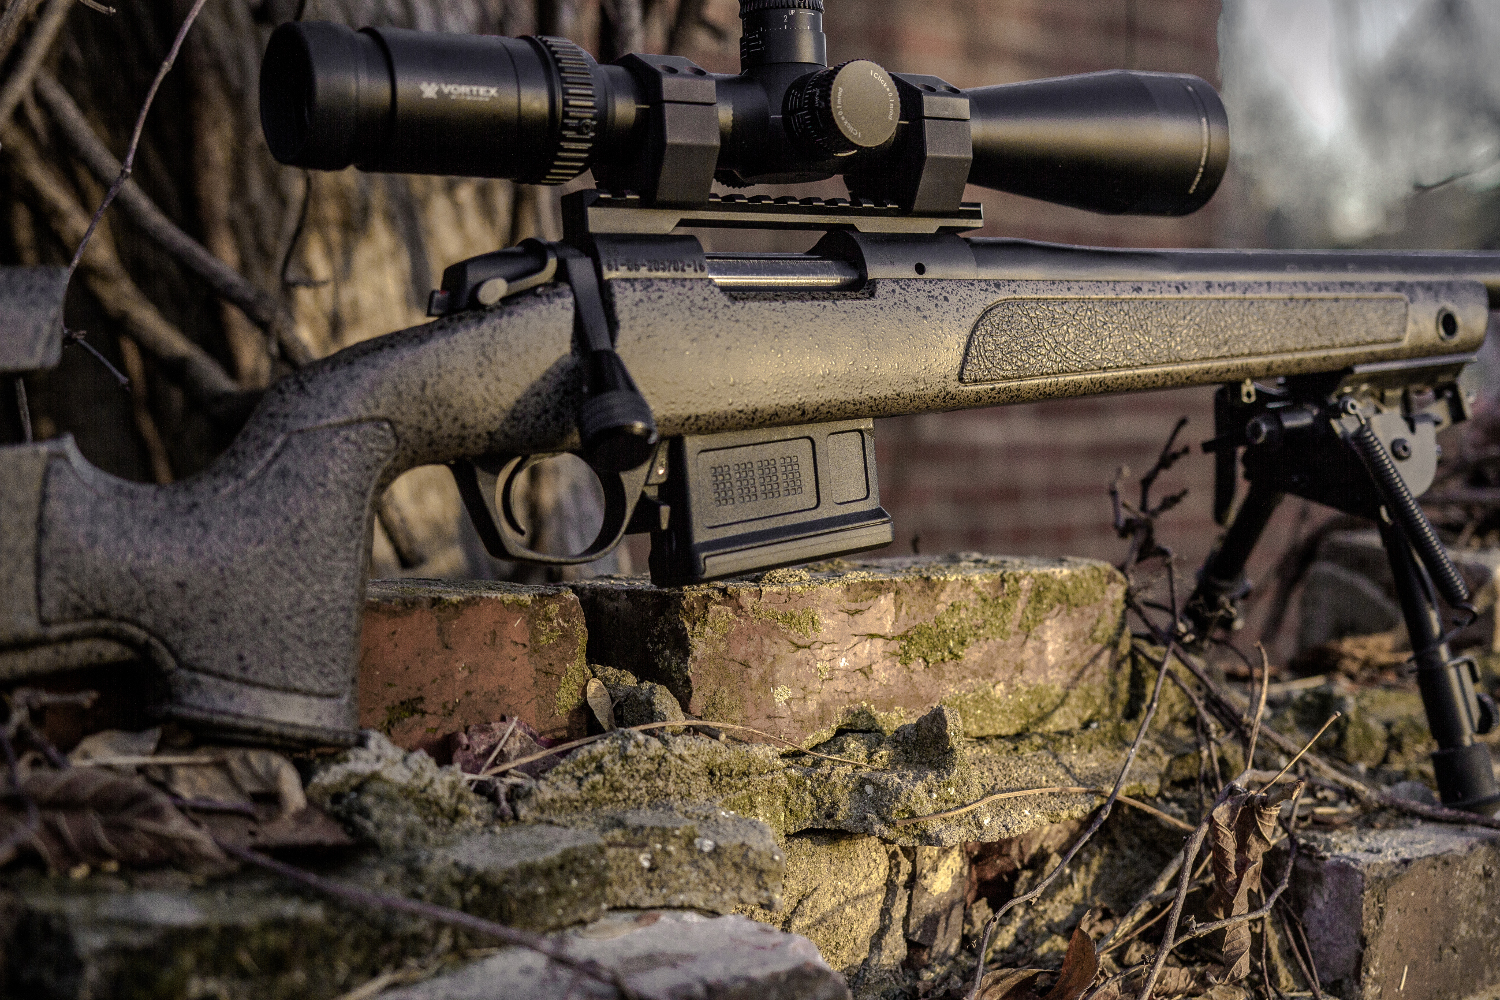 The Bergara B-14 HMR Chosen by Editors of Field & Stream for Best Hunting Gear of 2017 List